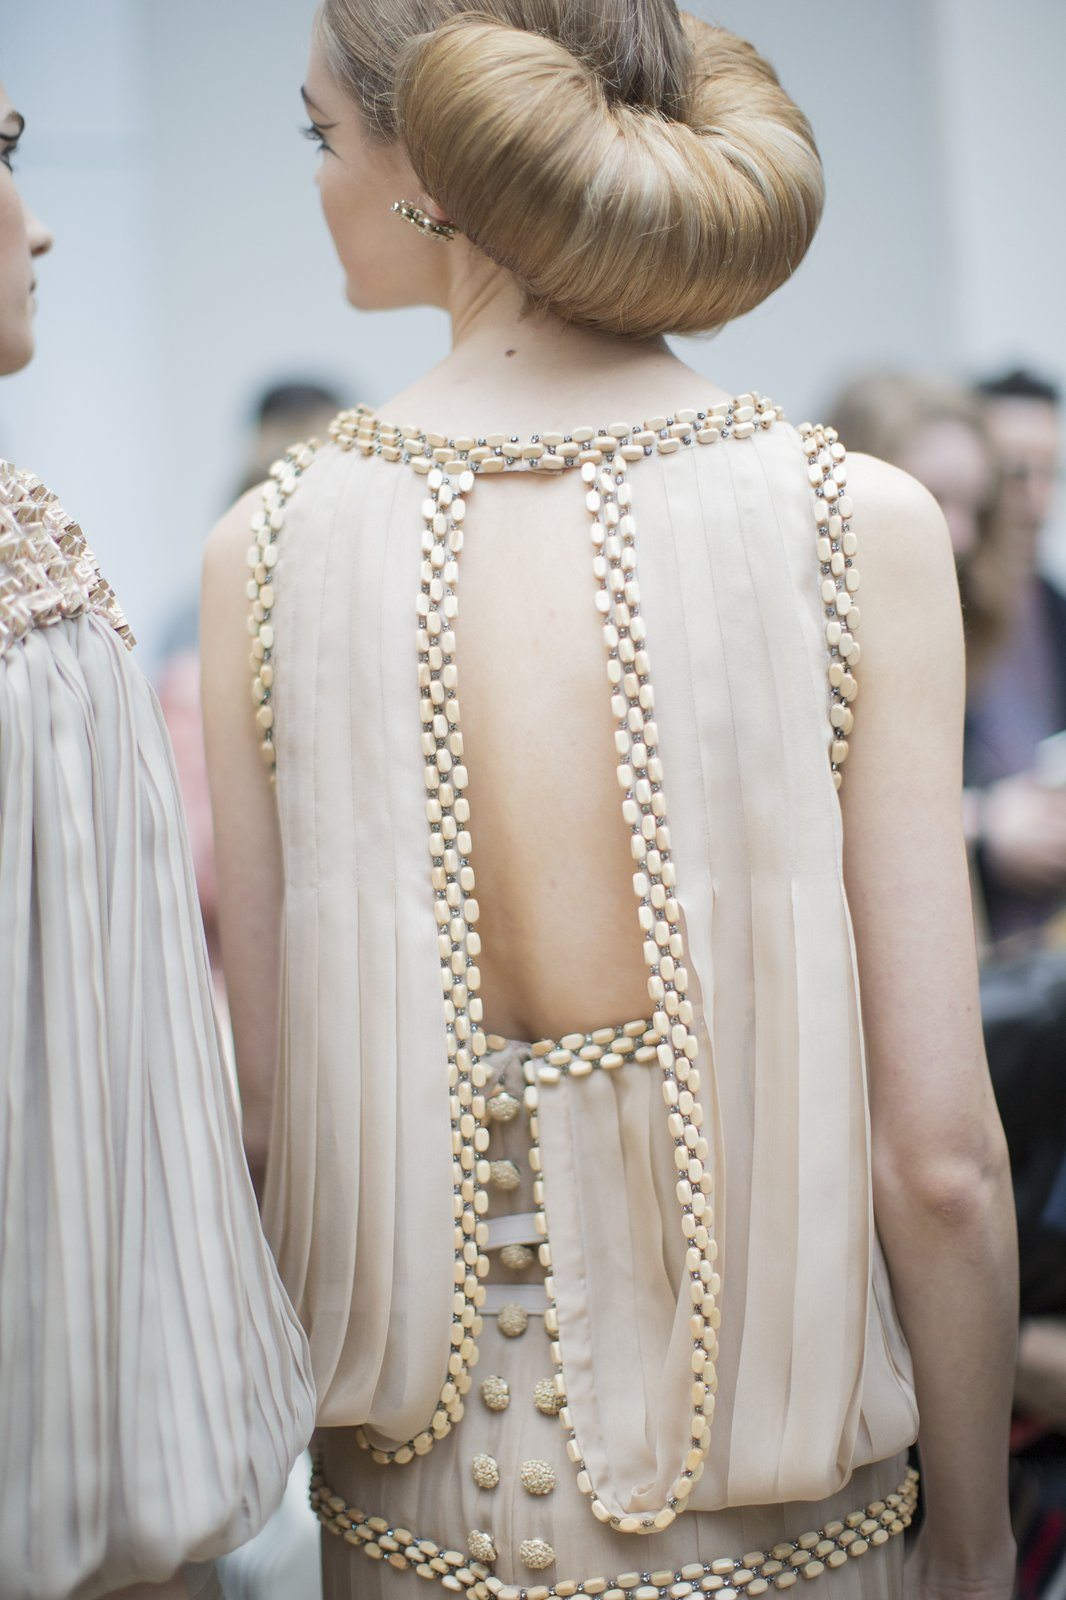 chanel-spring-2016-couture-backstage-kevin-tachman-06